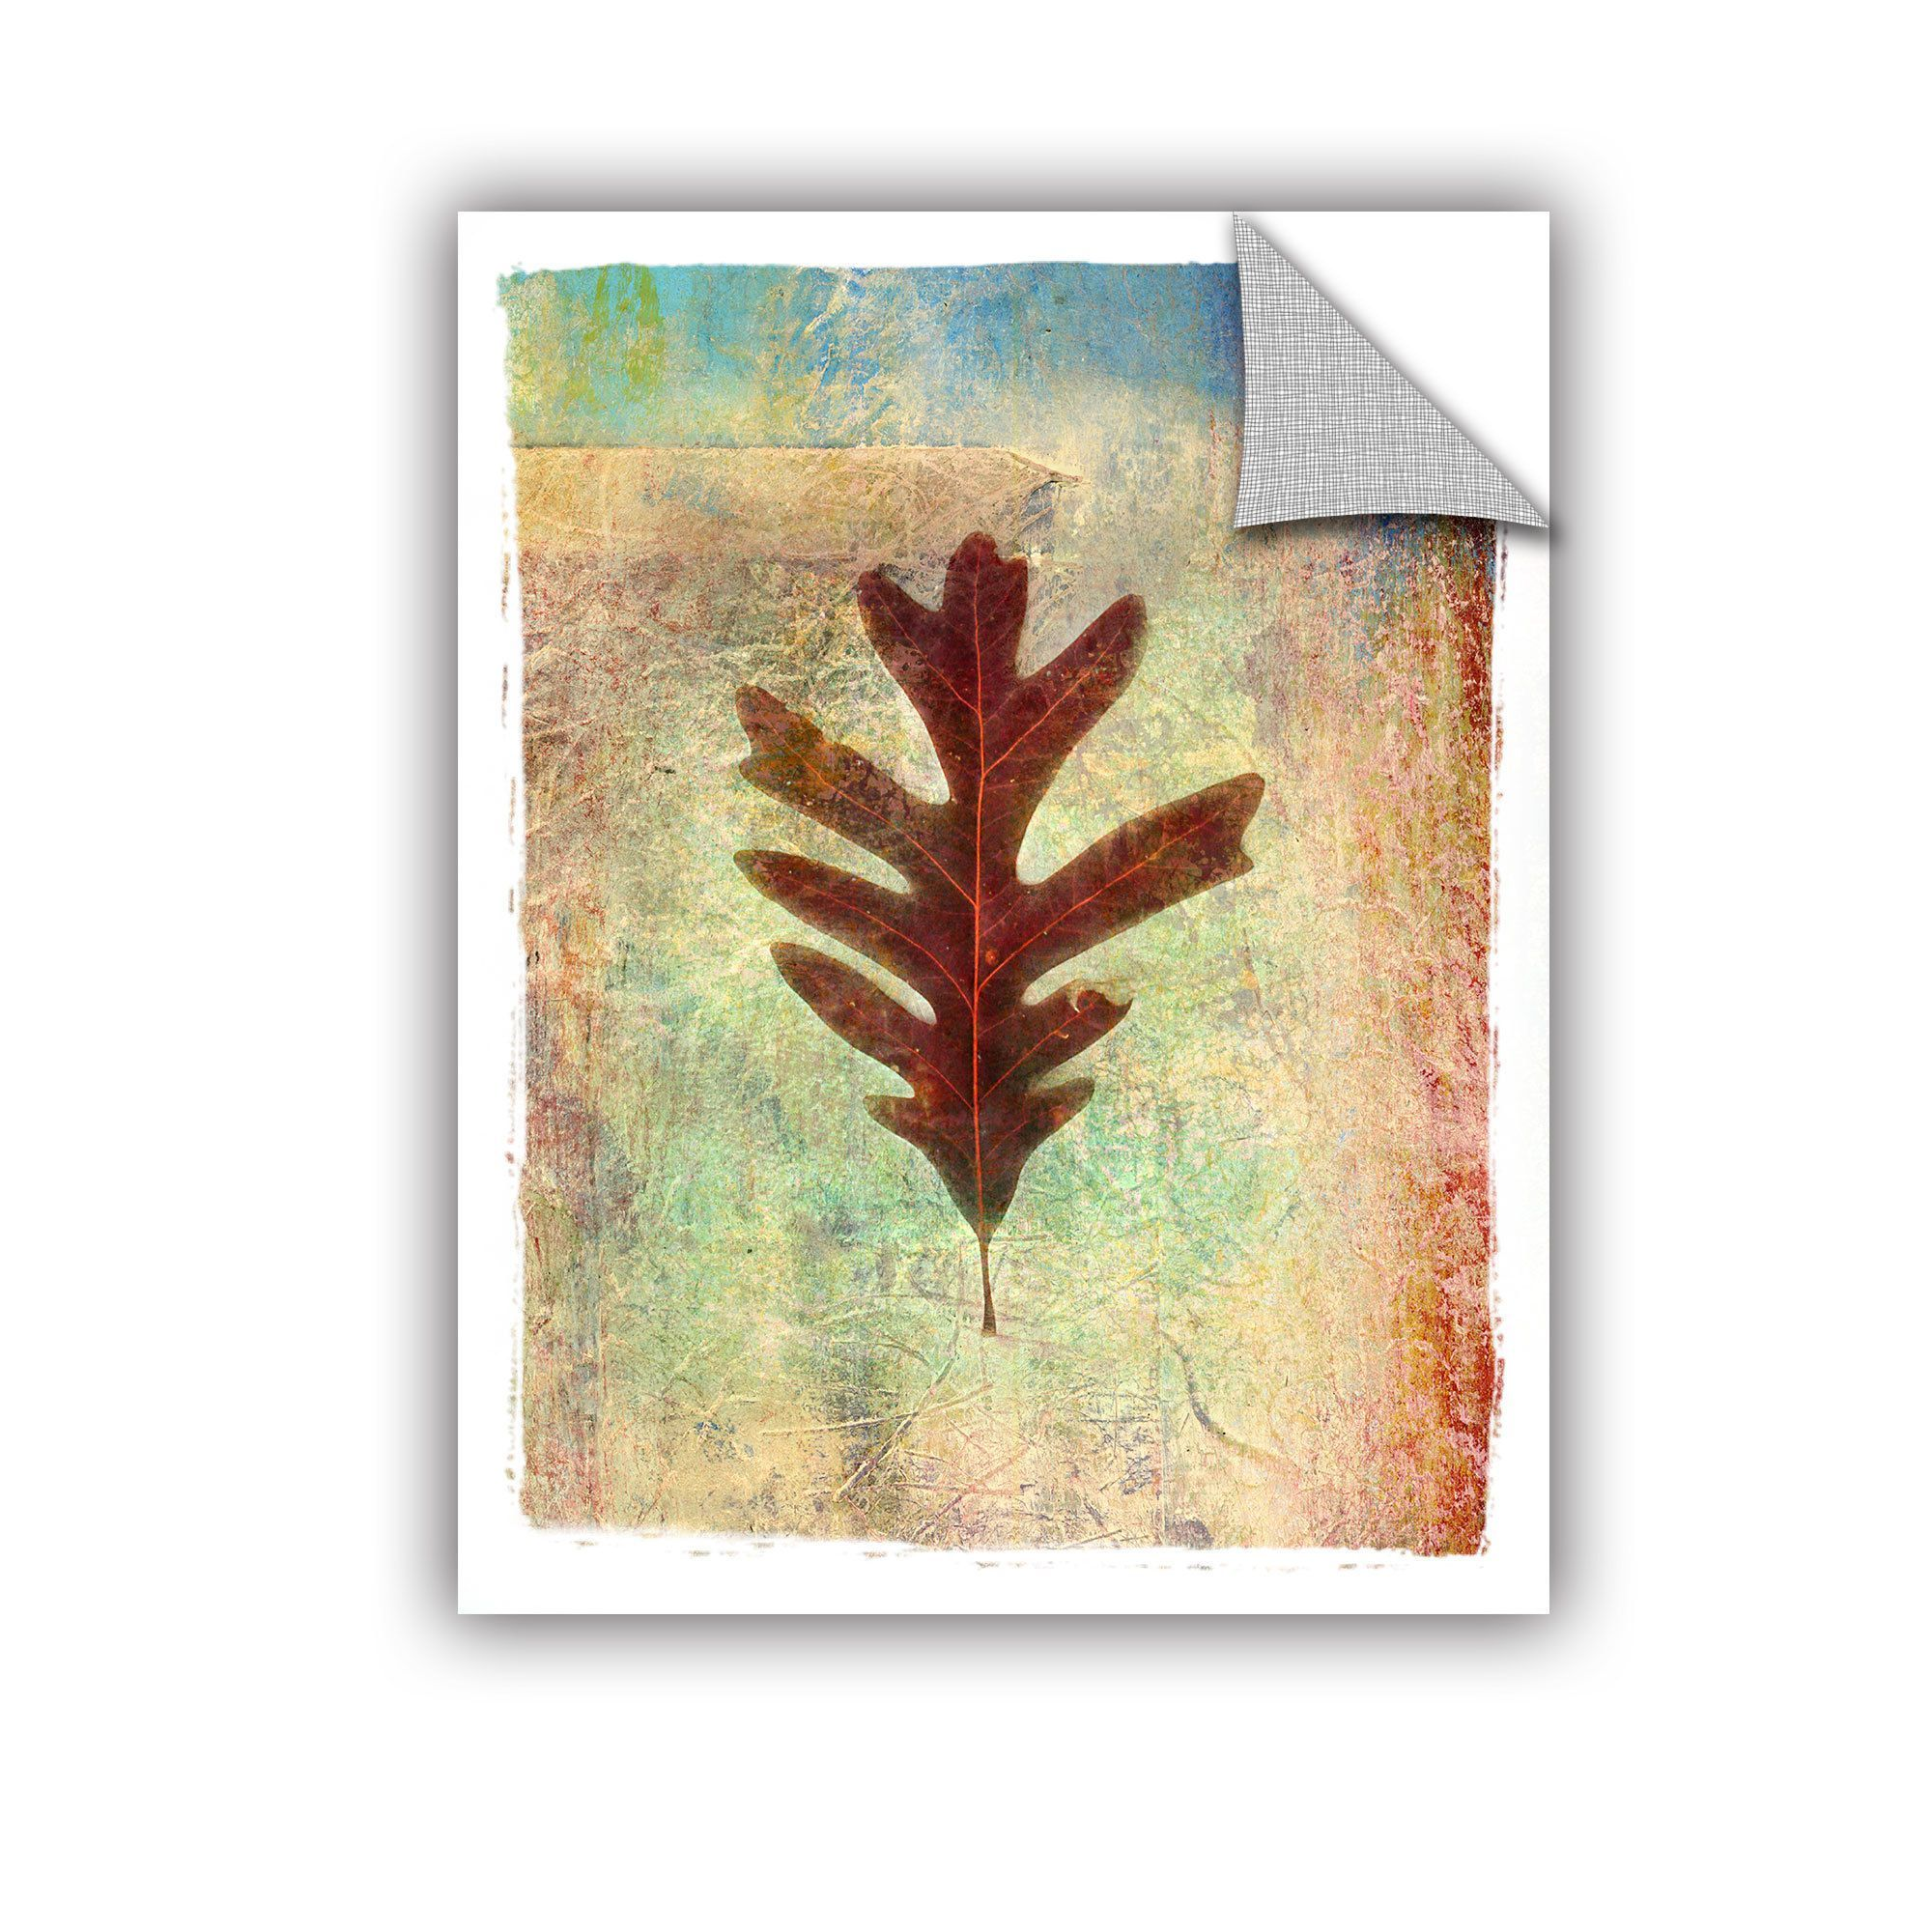 Dorable Mosaic Palm Leaves Wall Decor Motif - The Wall Art ...